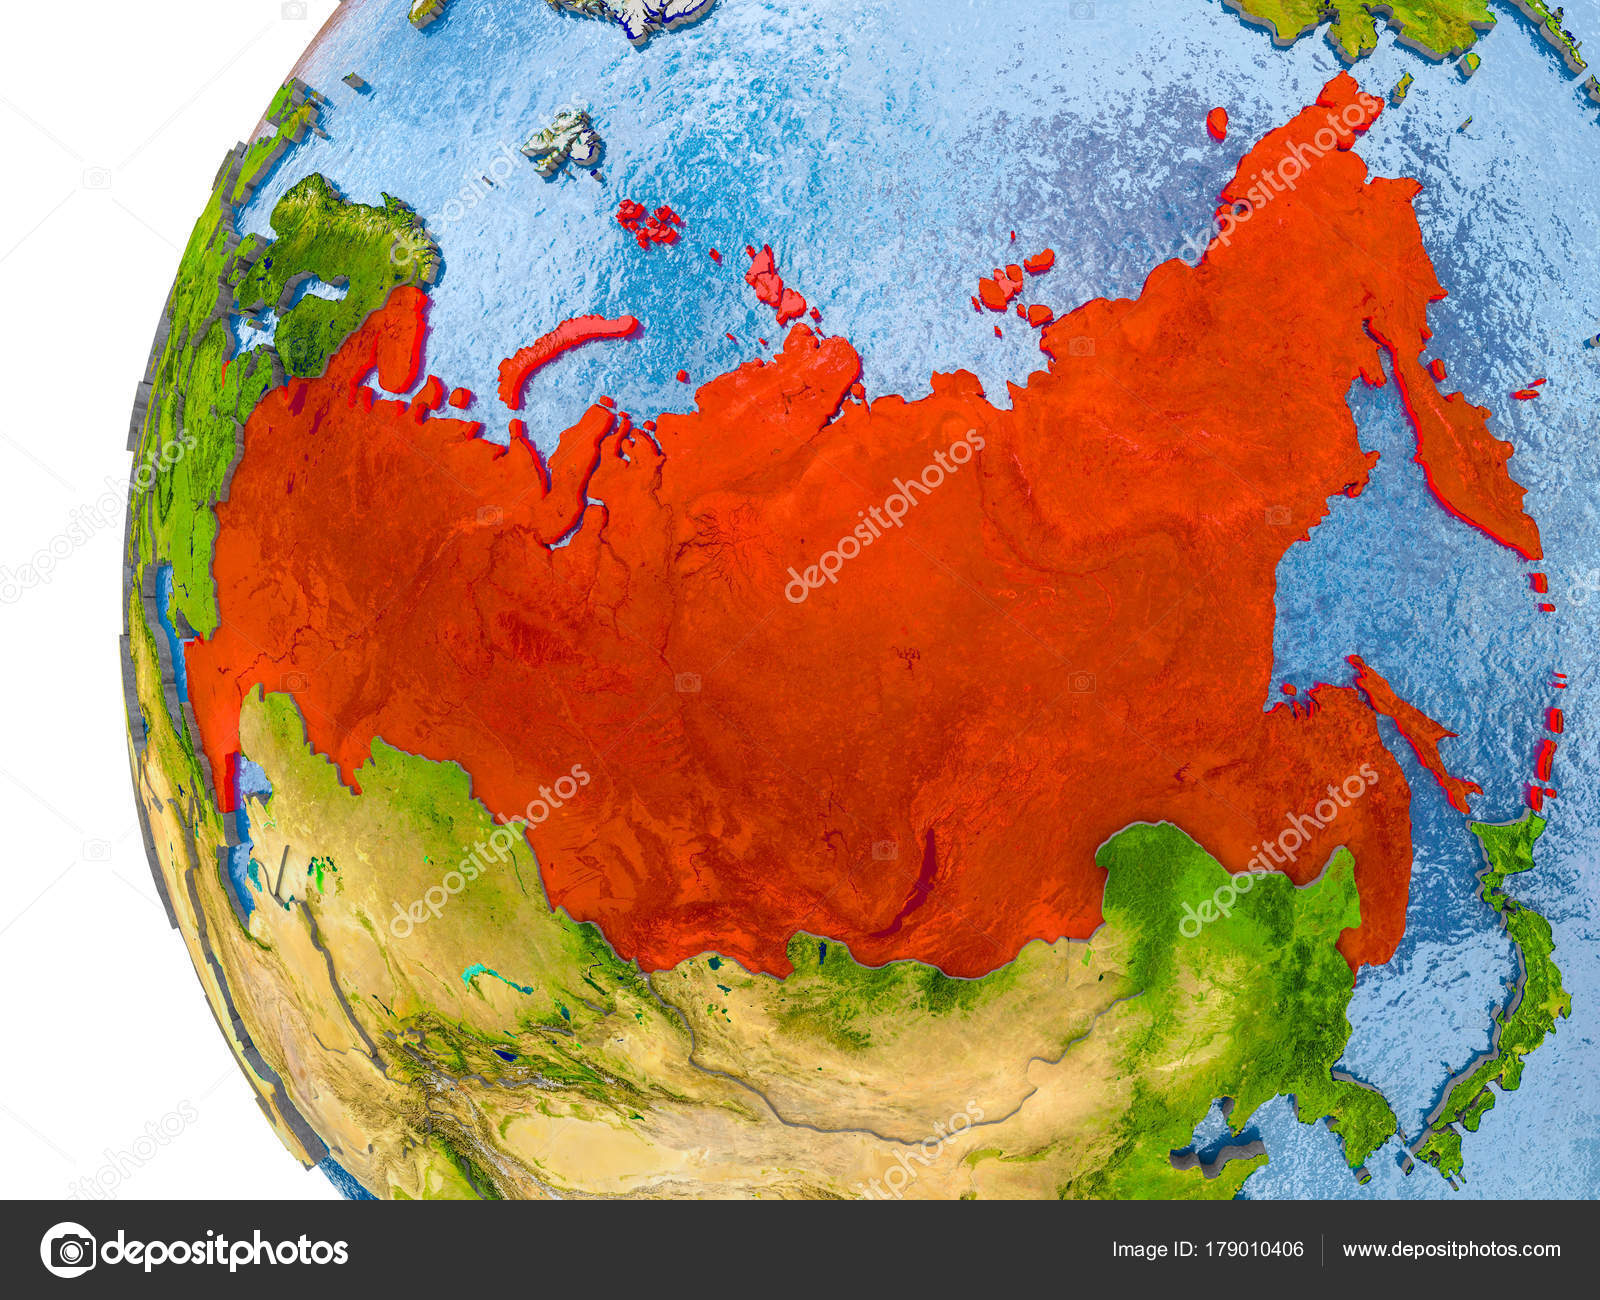 Map of russia on model of globe stock photo tomiger 179010406 map of russia on model of globe stock photo gumiabroncs Images